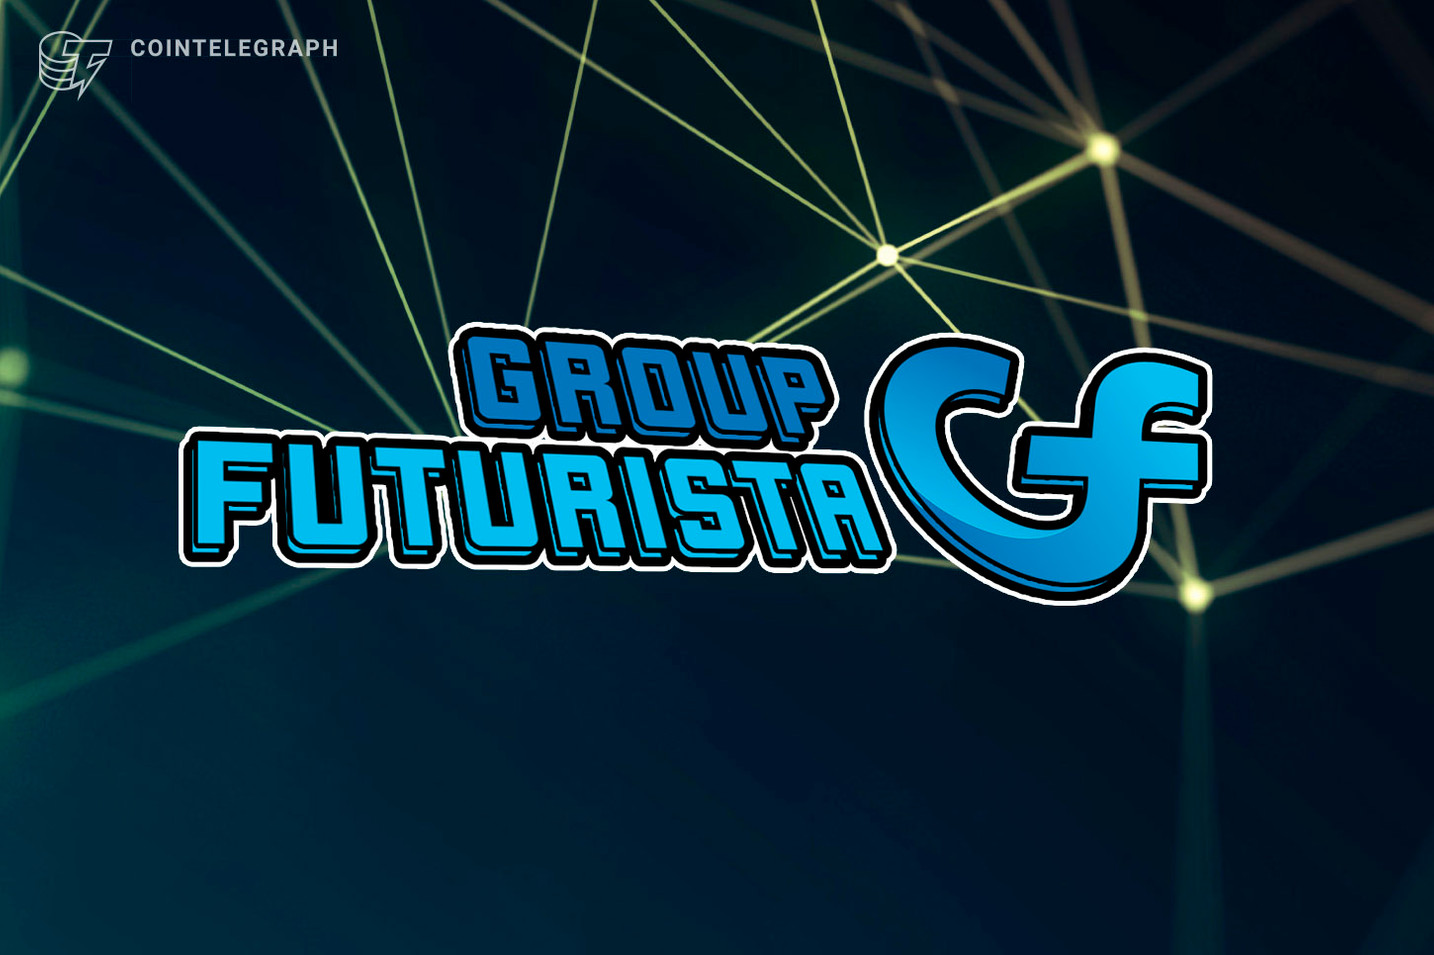 Special Highlights on the Webinar 2 Hosted by Group Futurista